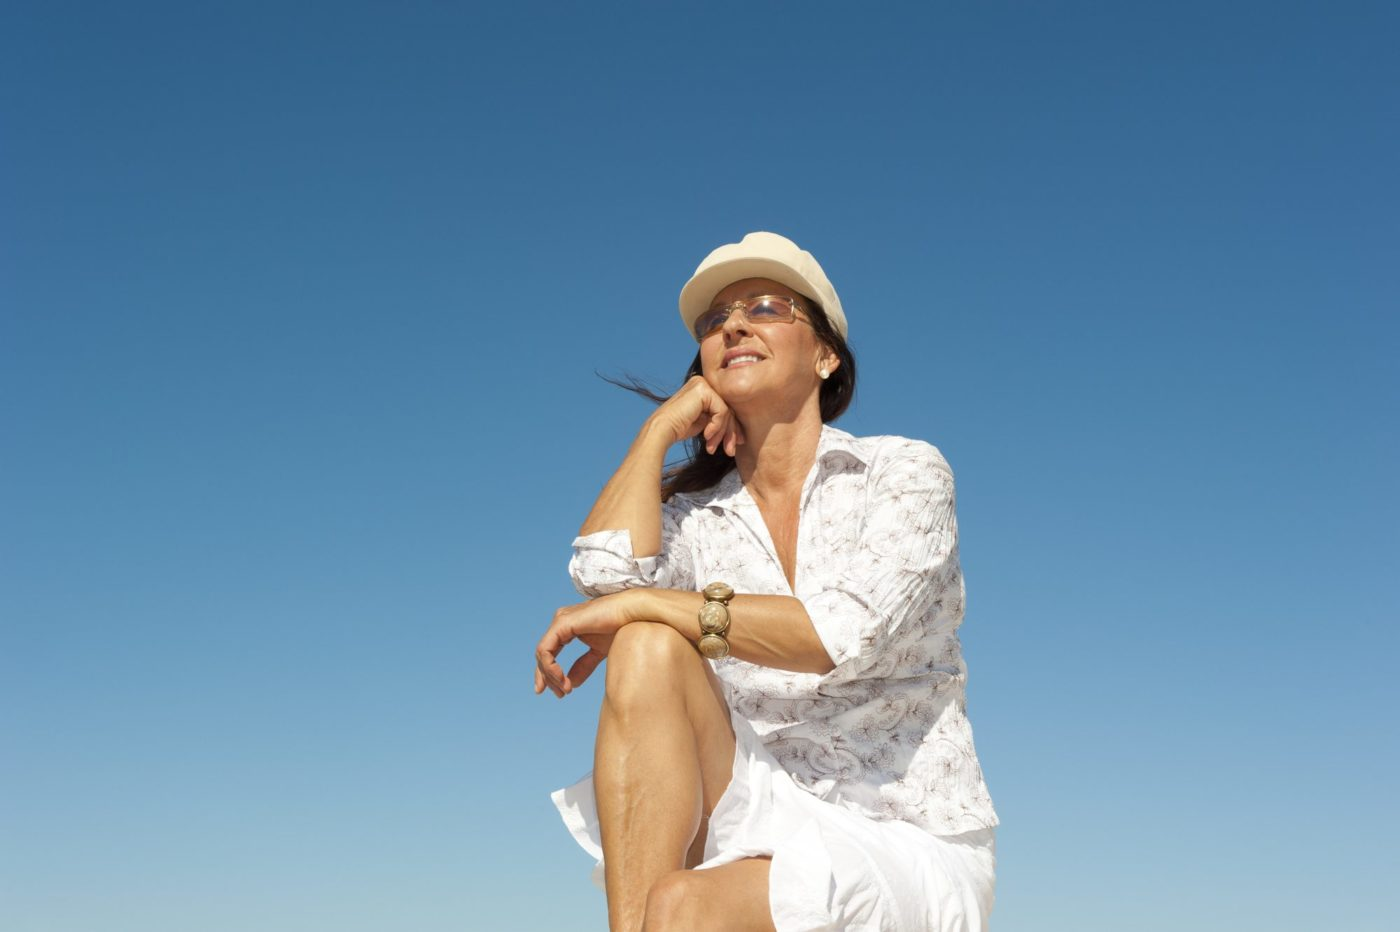 singles holidays for the over 60s - mature woman enjoying the sunshine